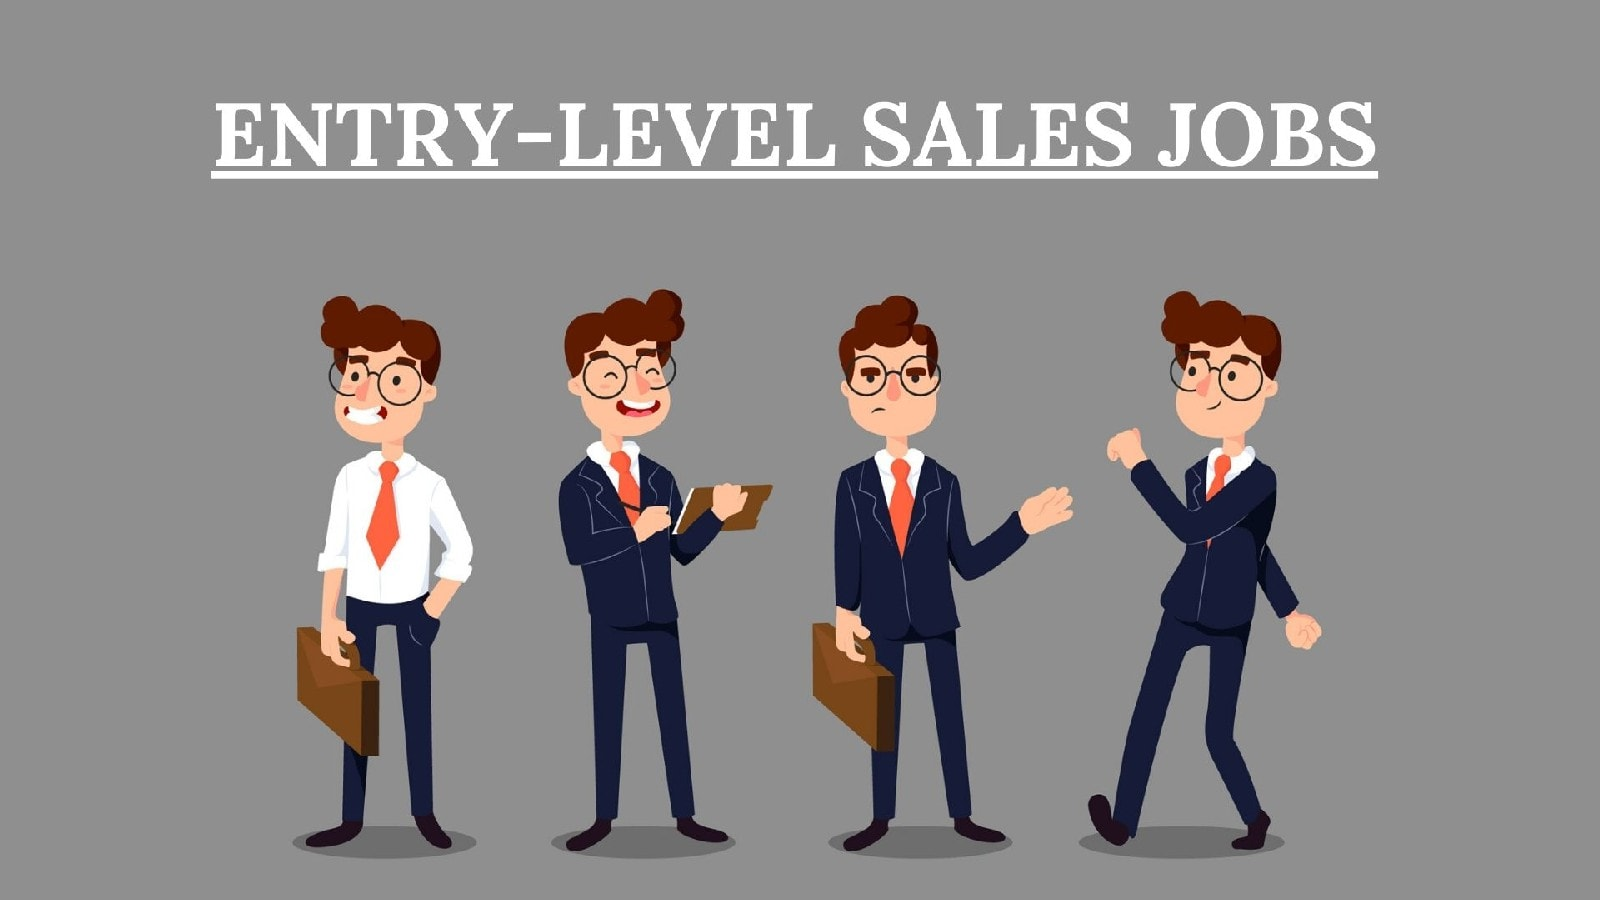 Entry-level sales Jobs